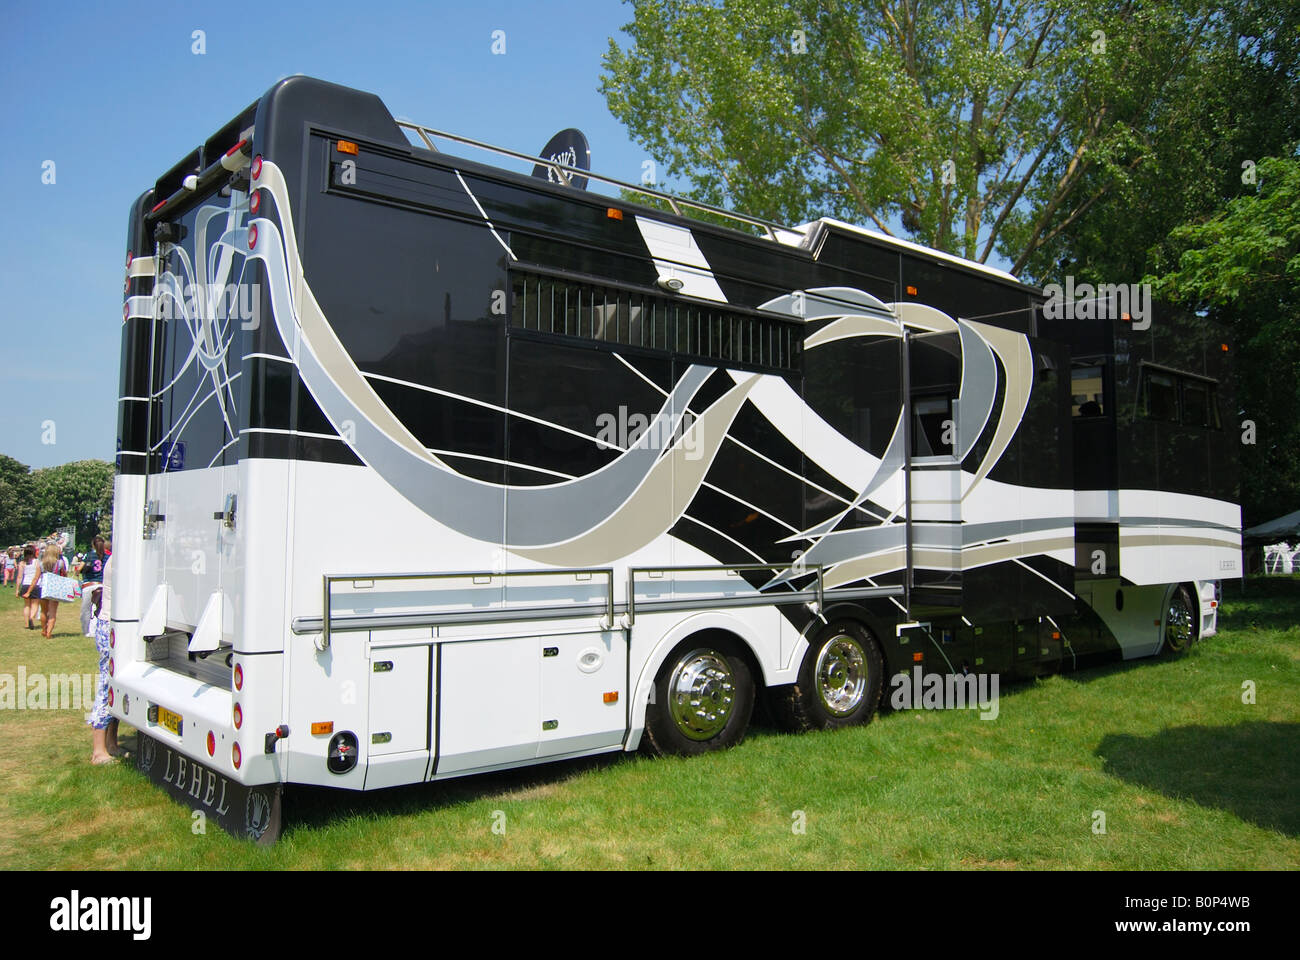 Modern Luxury Horsebox Royal Windsor Horse Show Home Park Berkshire England United Kingdom